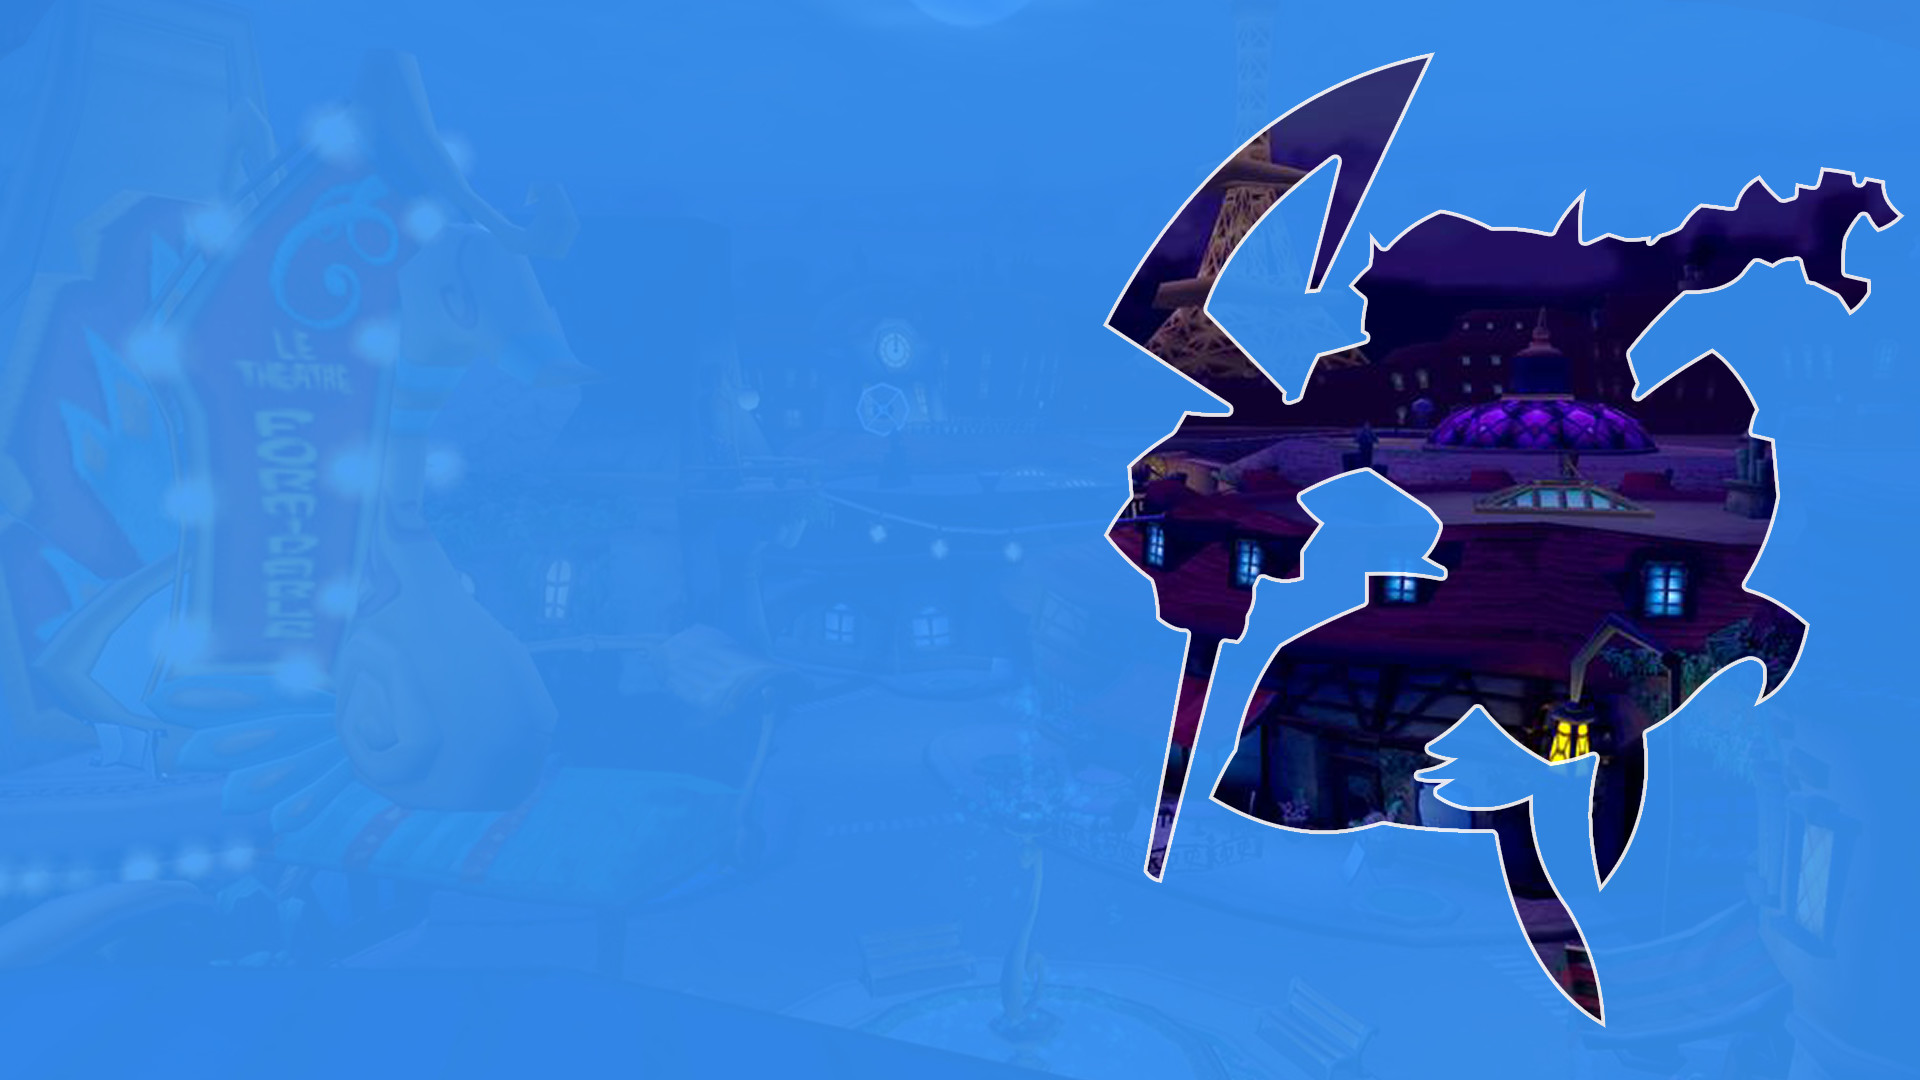 Sly Cooper Background